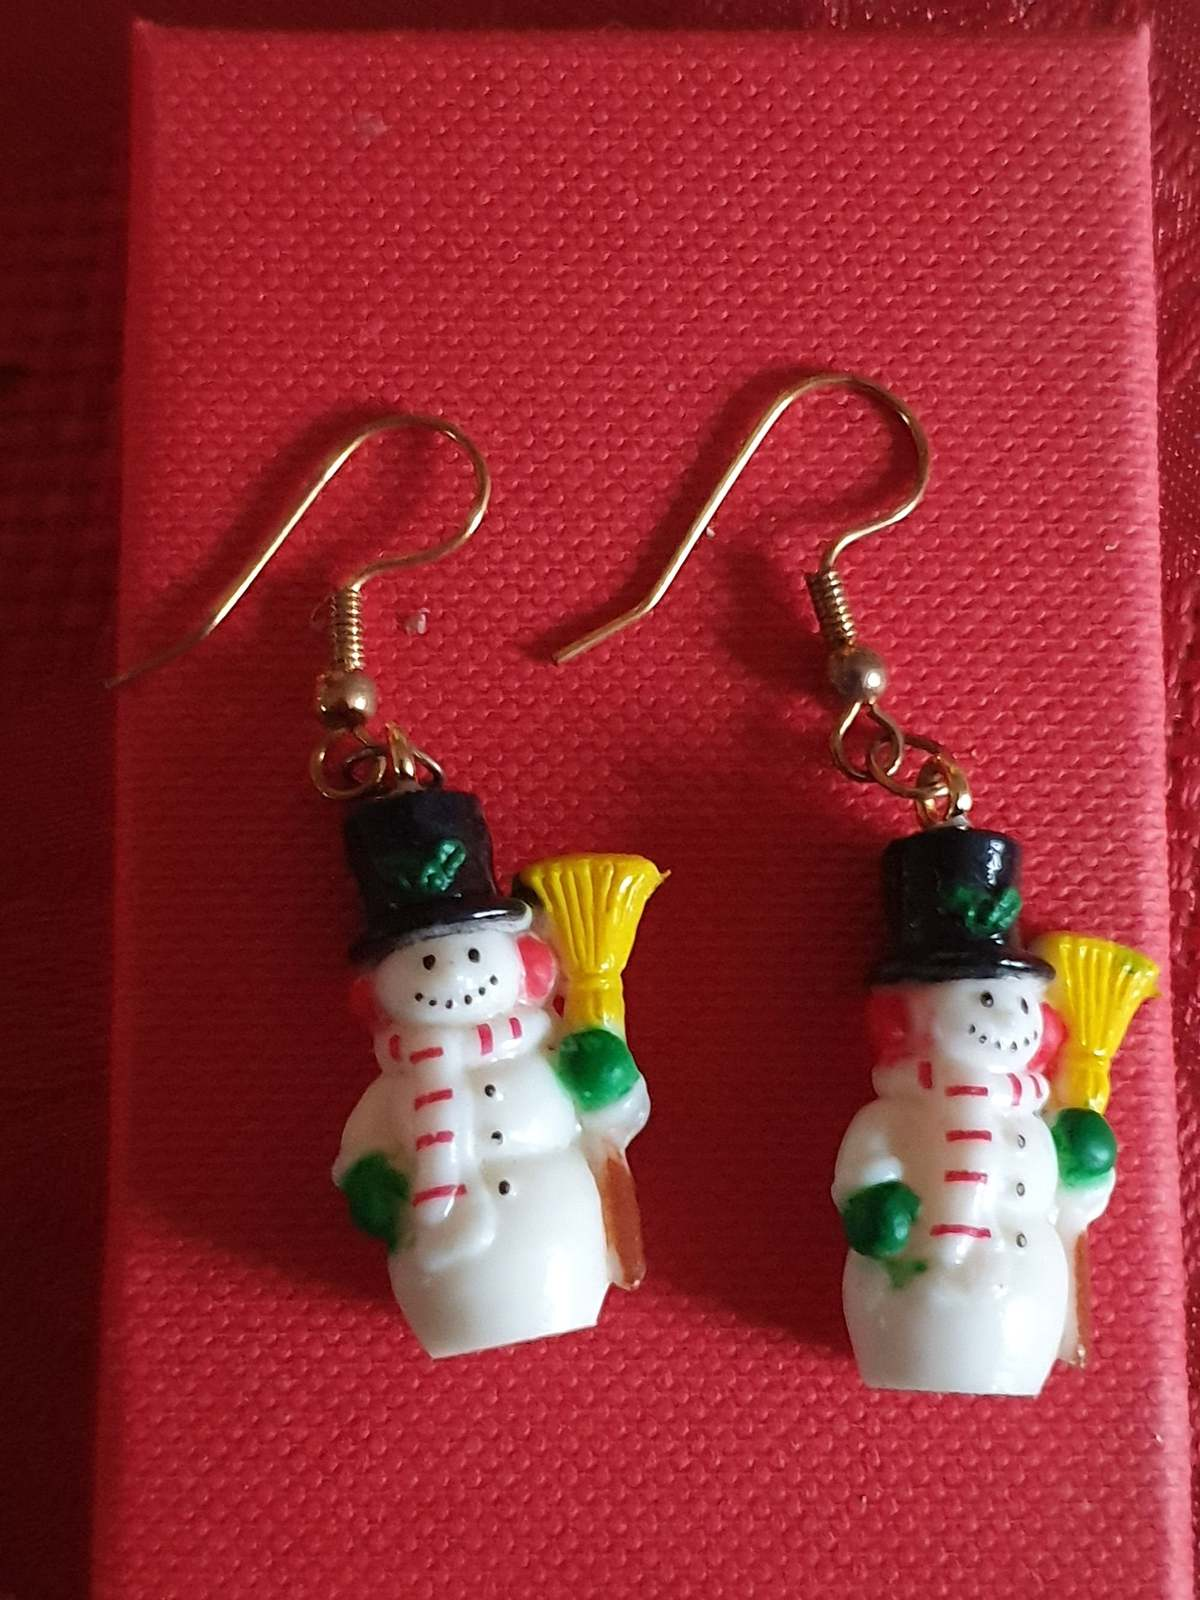 xmas sale xmas snowman with broom earrings, ideal gift novelty earrings